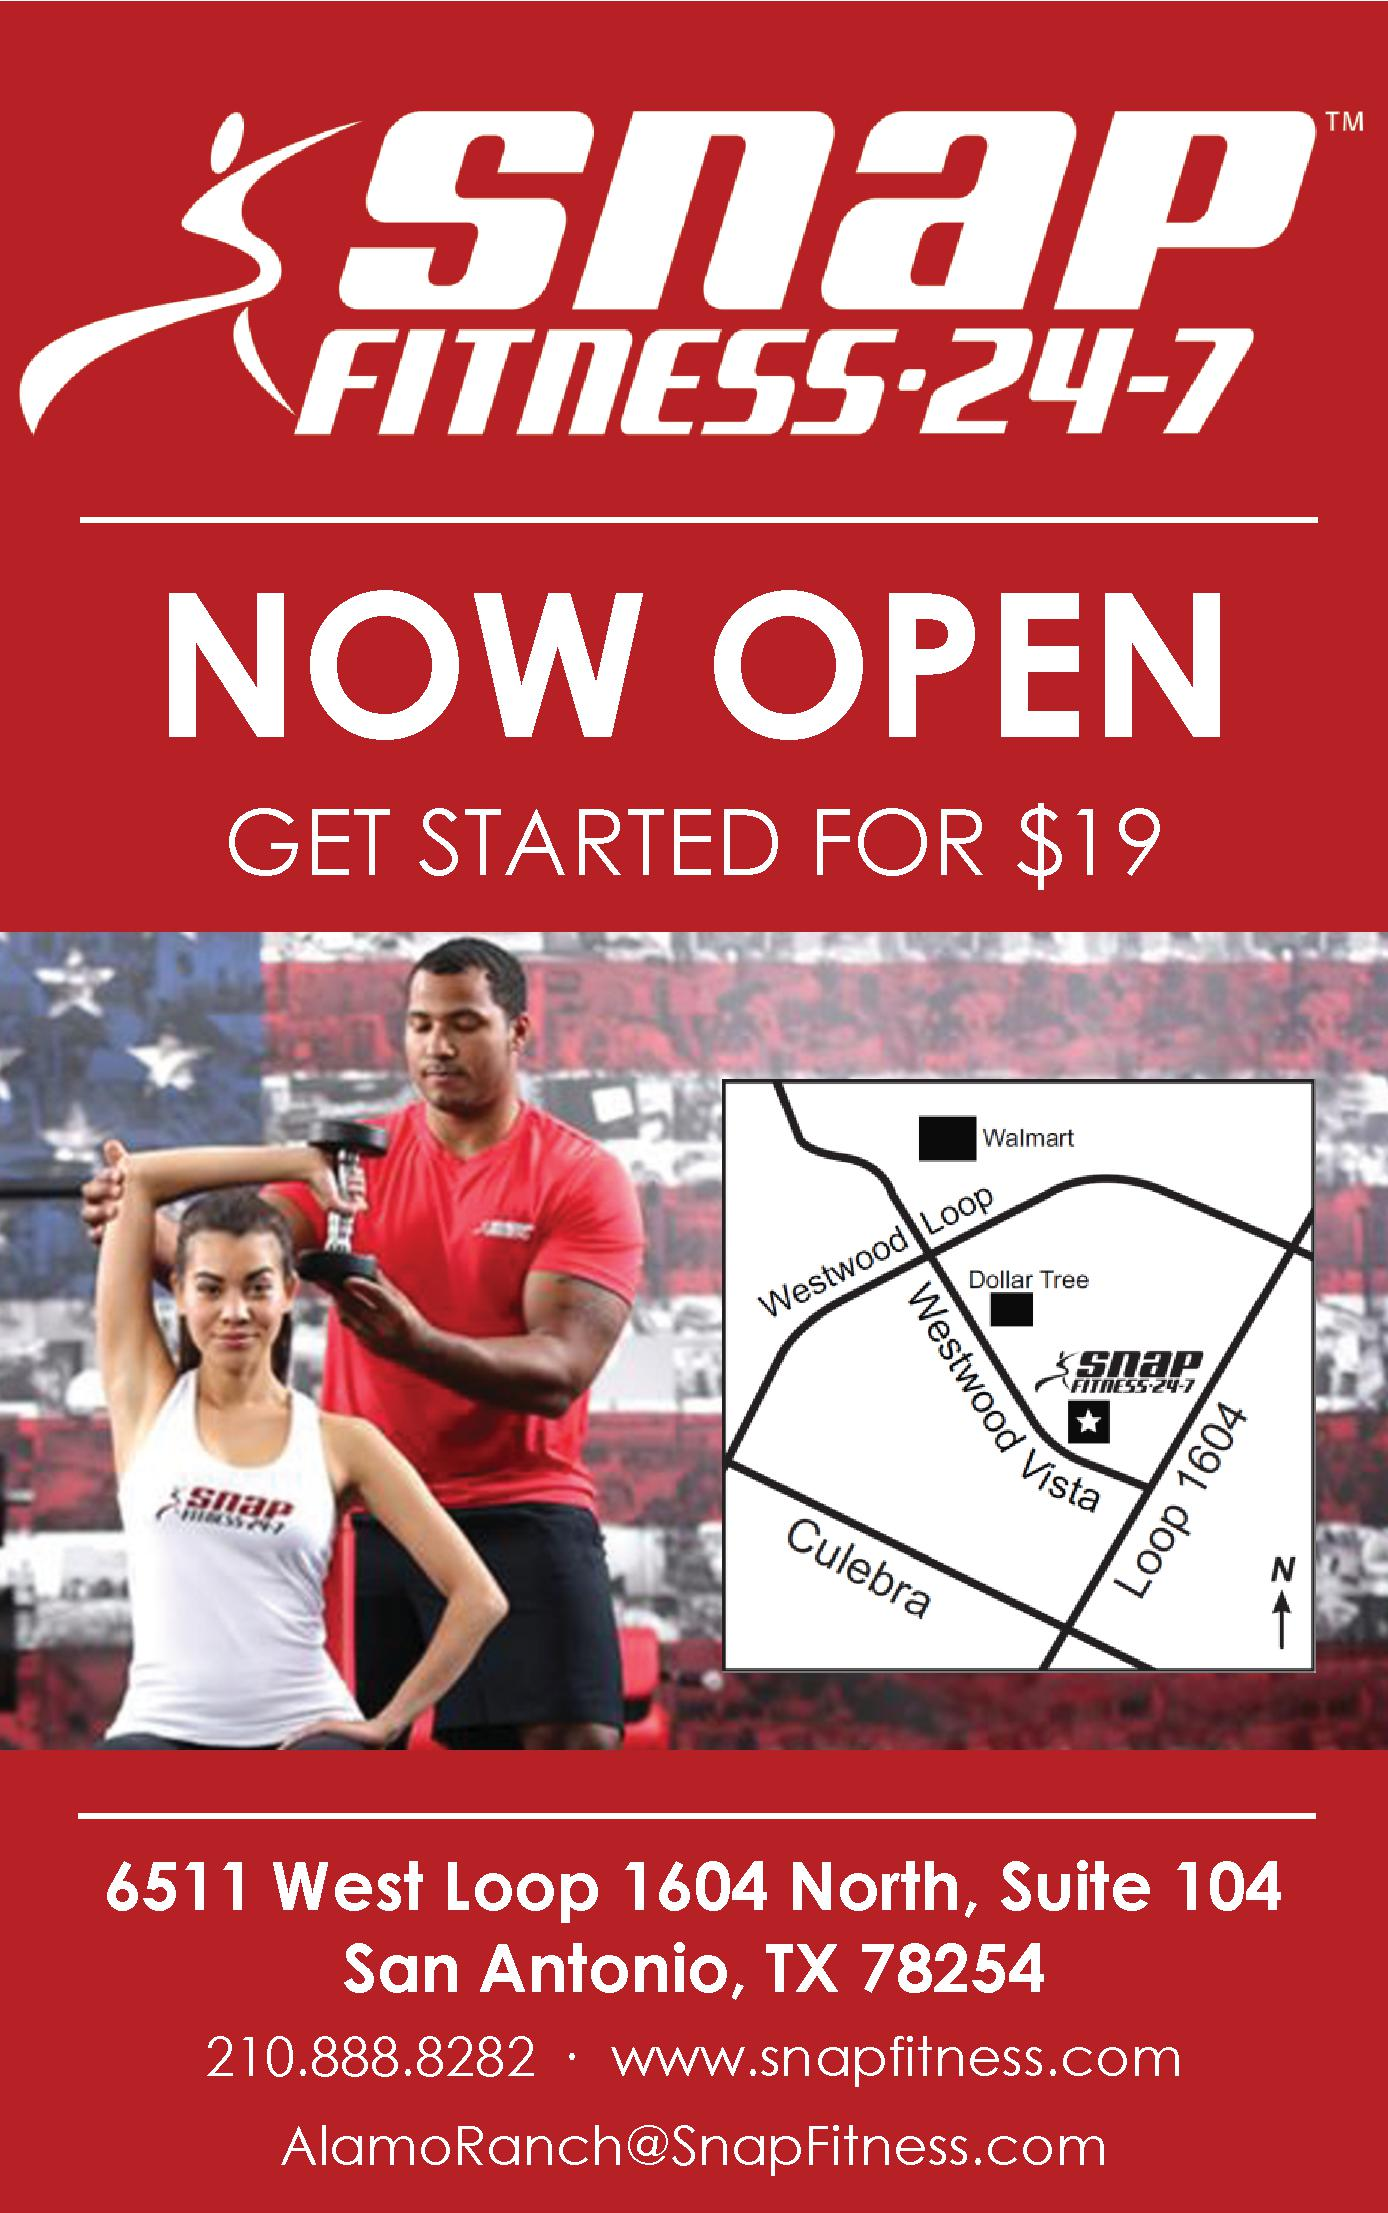 Snap Fitness - Alamo Ranch